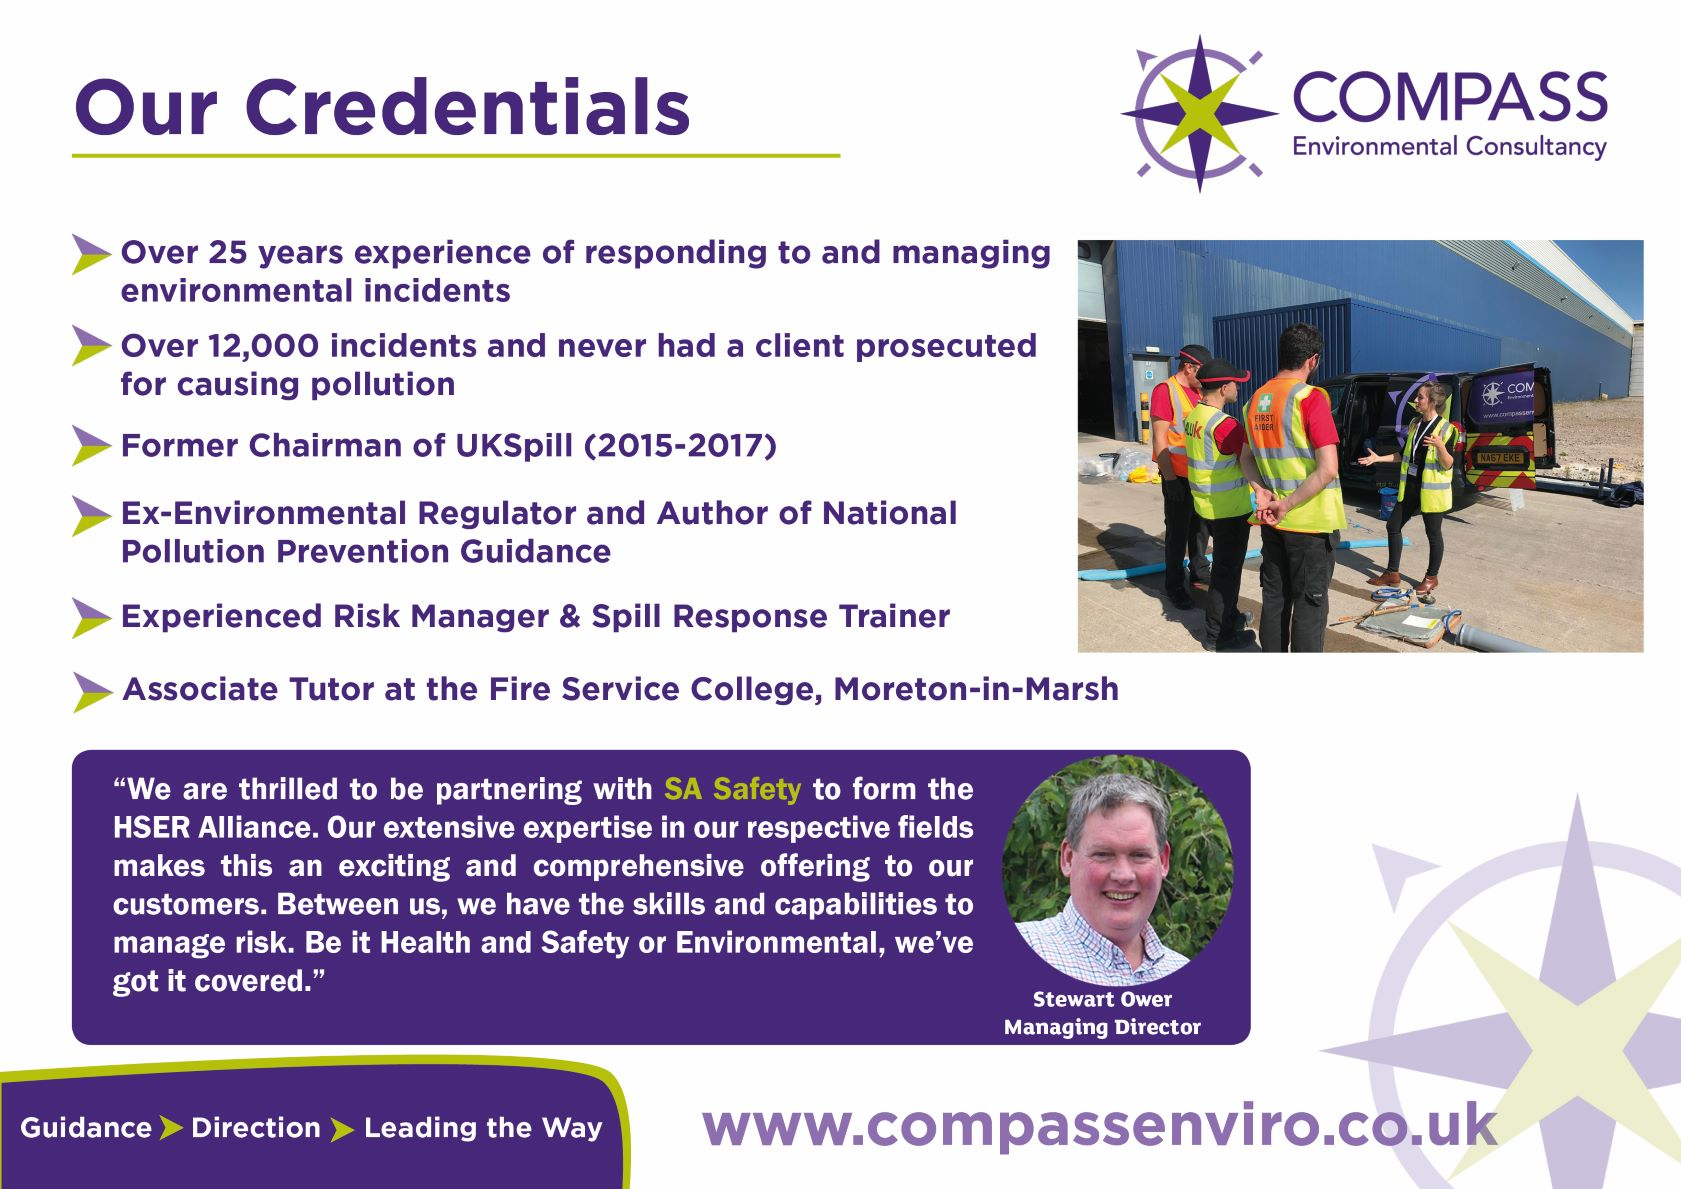 https://sasafety.co.uk/wp-content/uploads/Our-Credentials-002-2mp.jpg